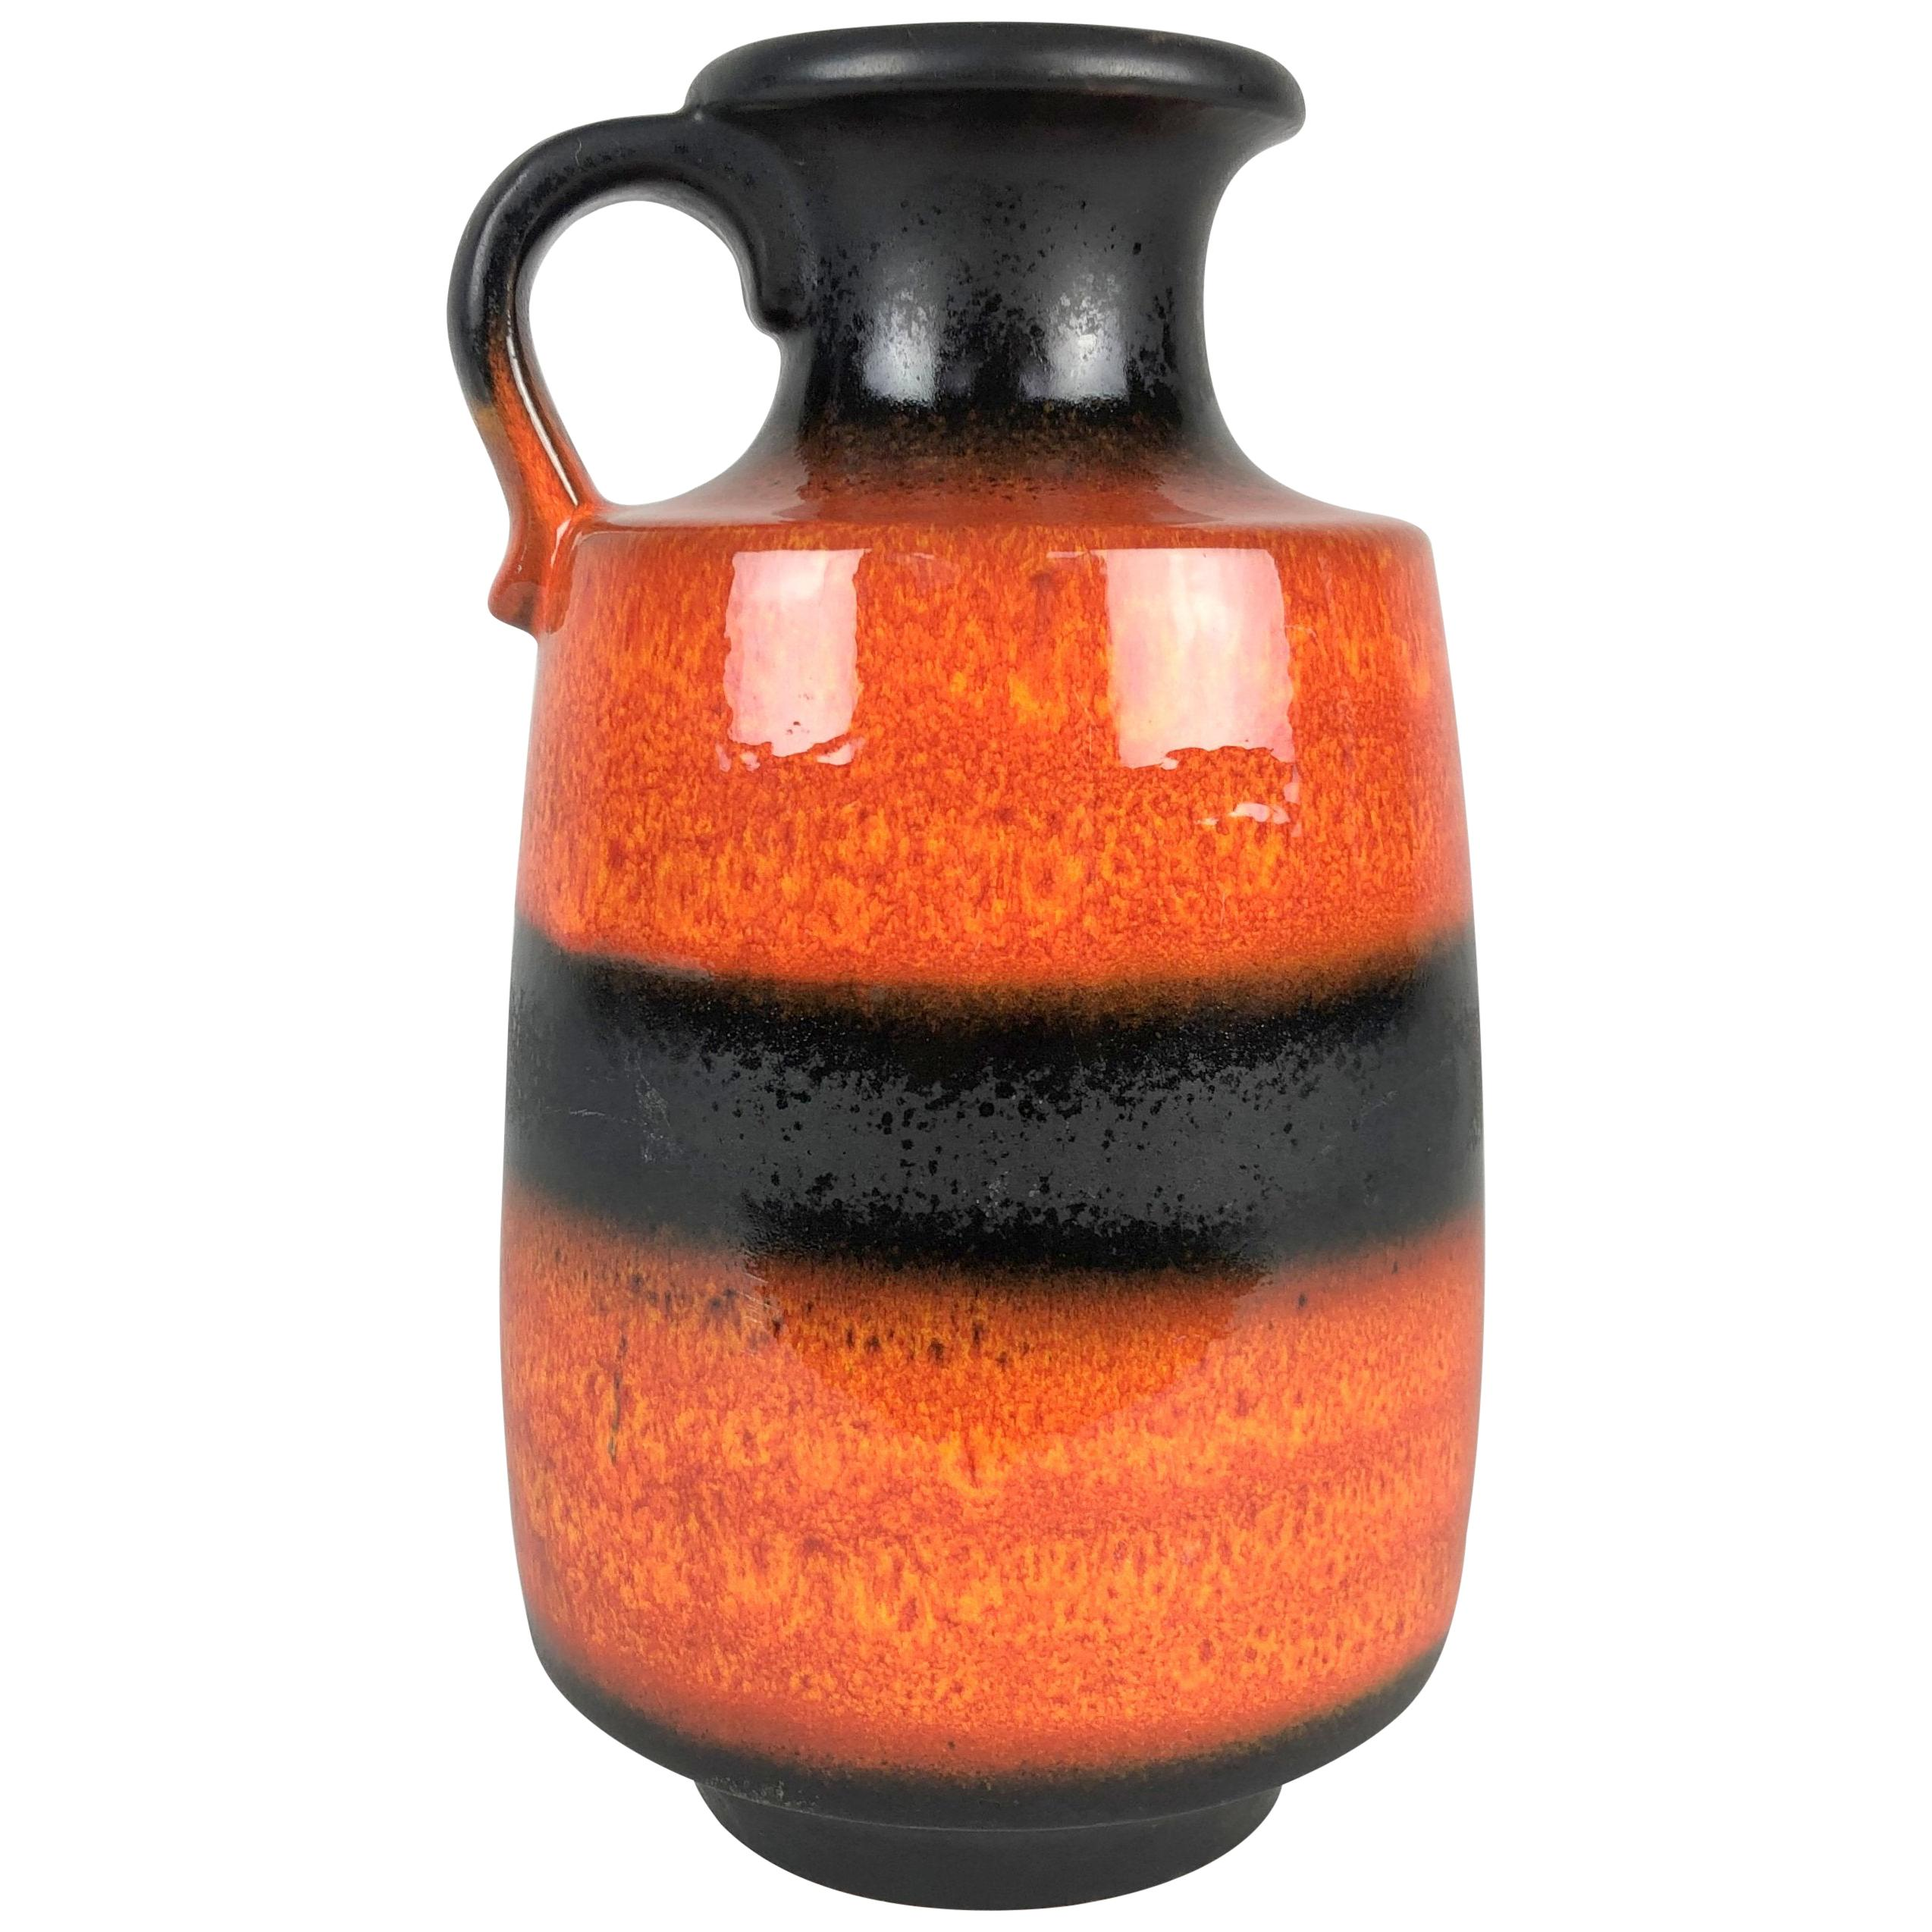 Carstens Tonnieshof German Pottery Vase 7650-30 Vintage Vase Home and Living Collectible Decor